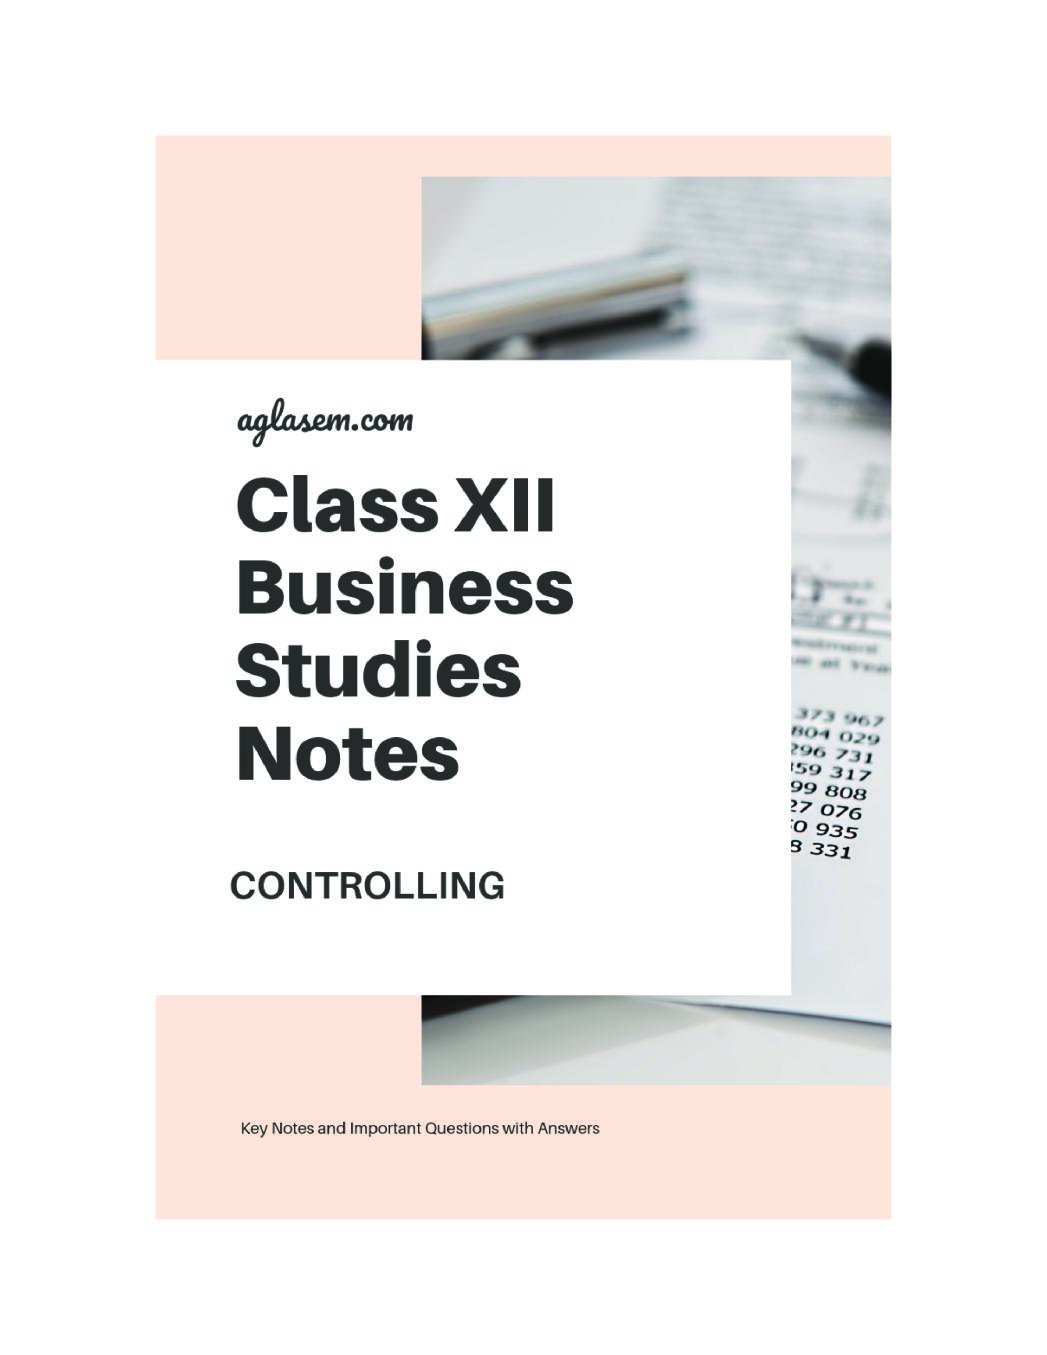 Class 12 Business Studies Notes for Controlling